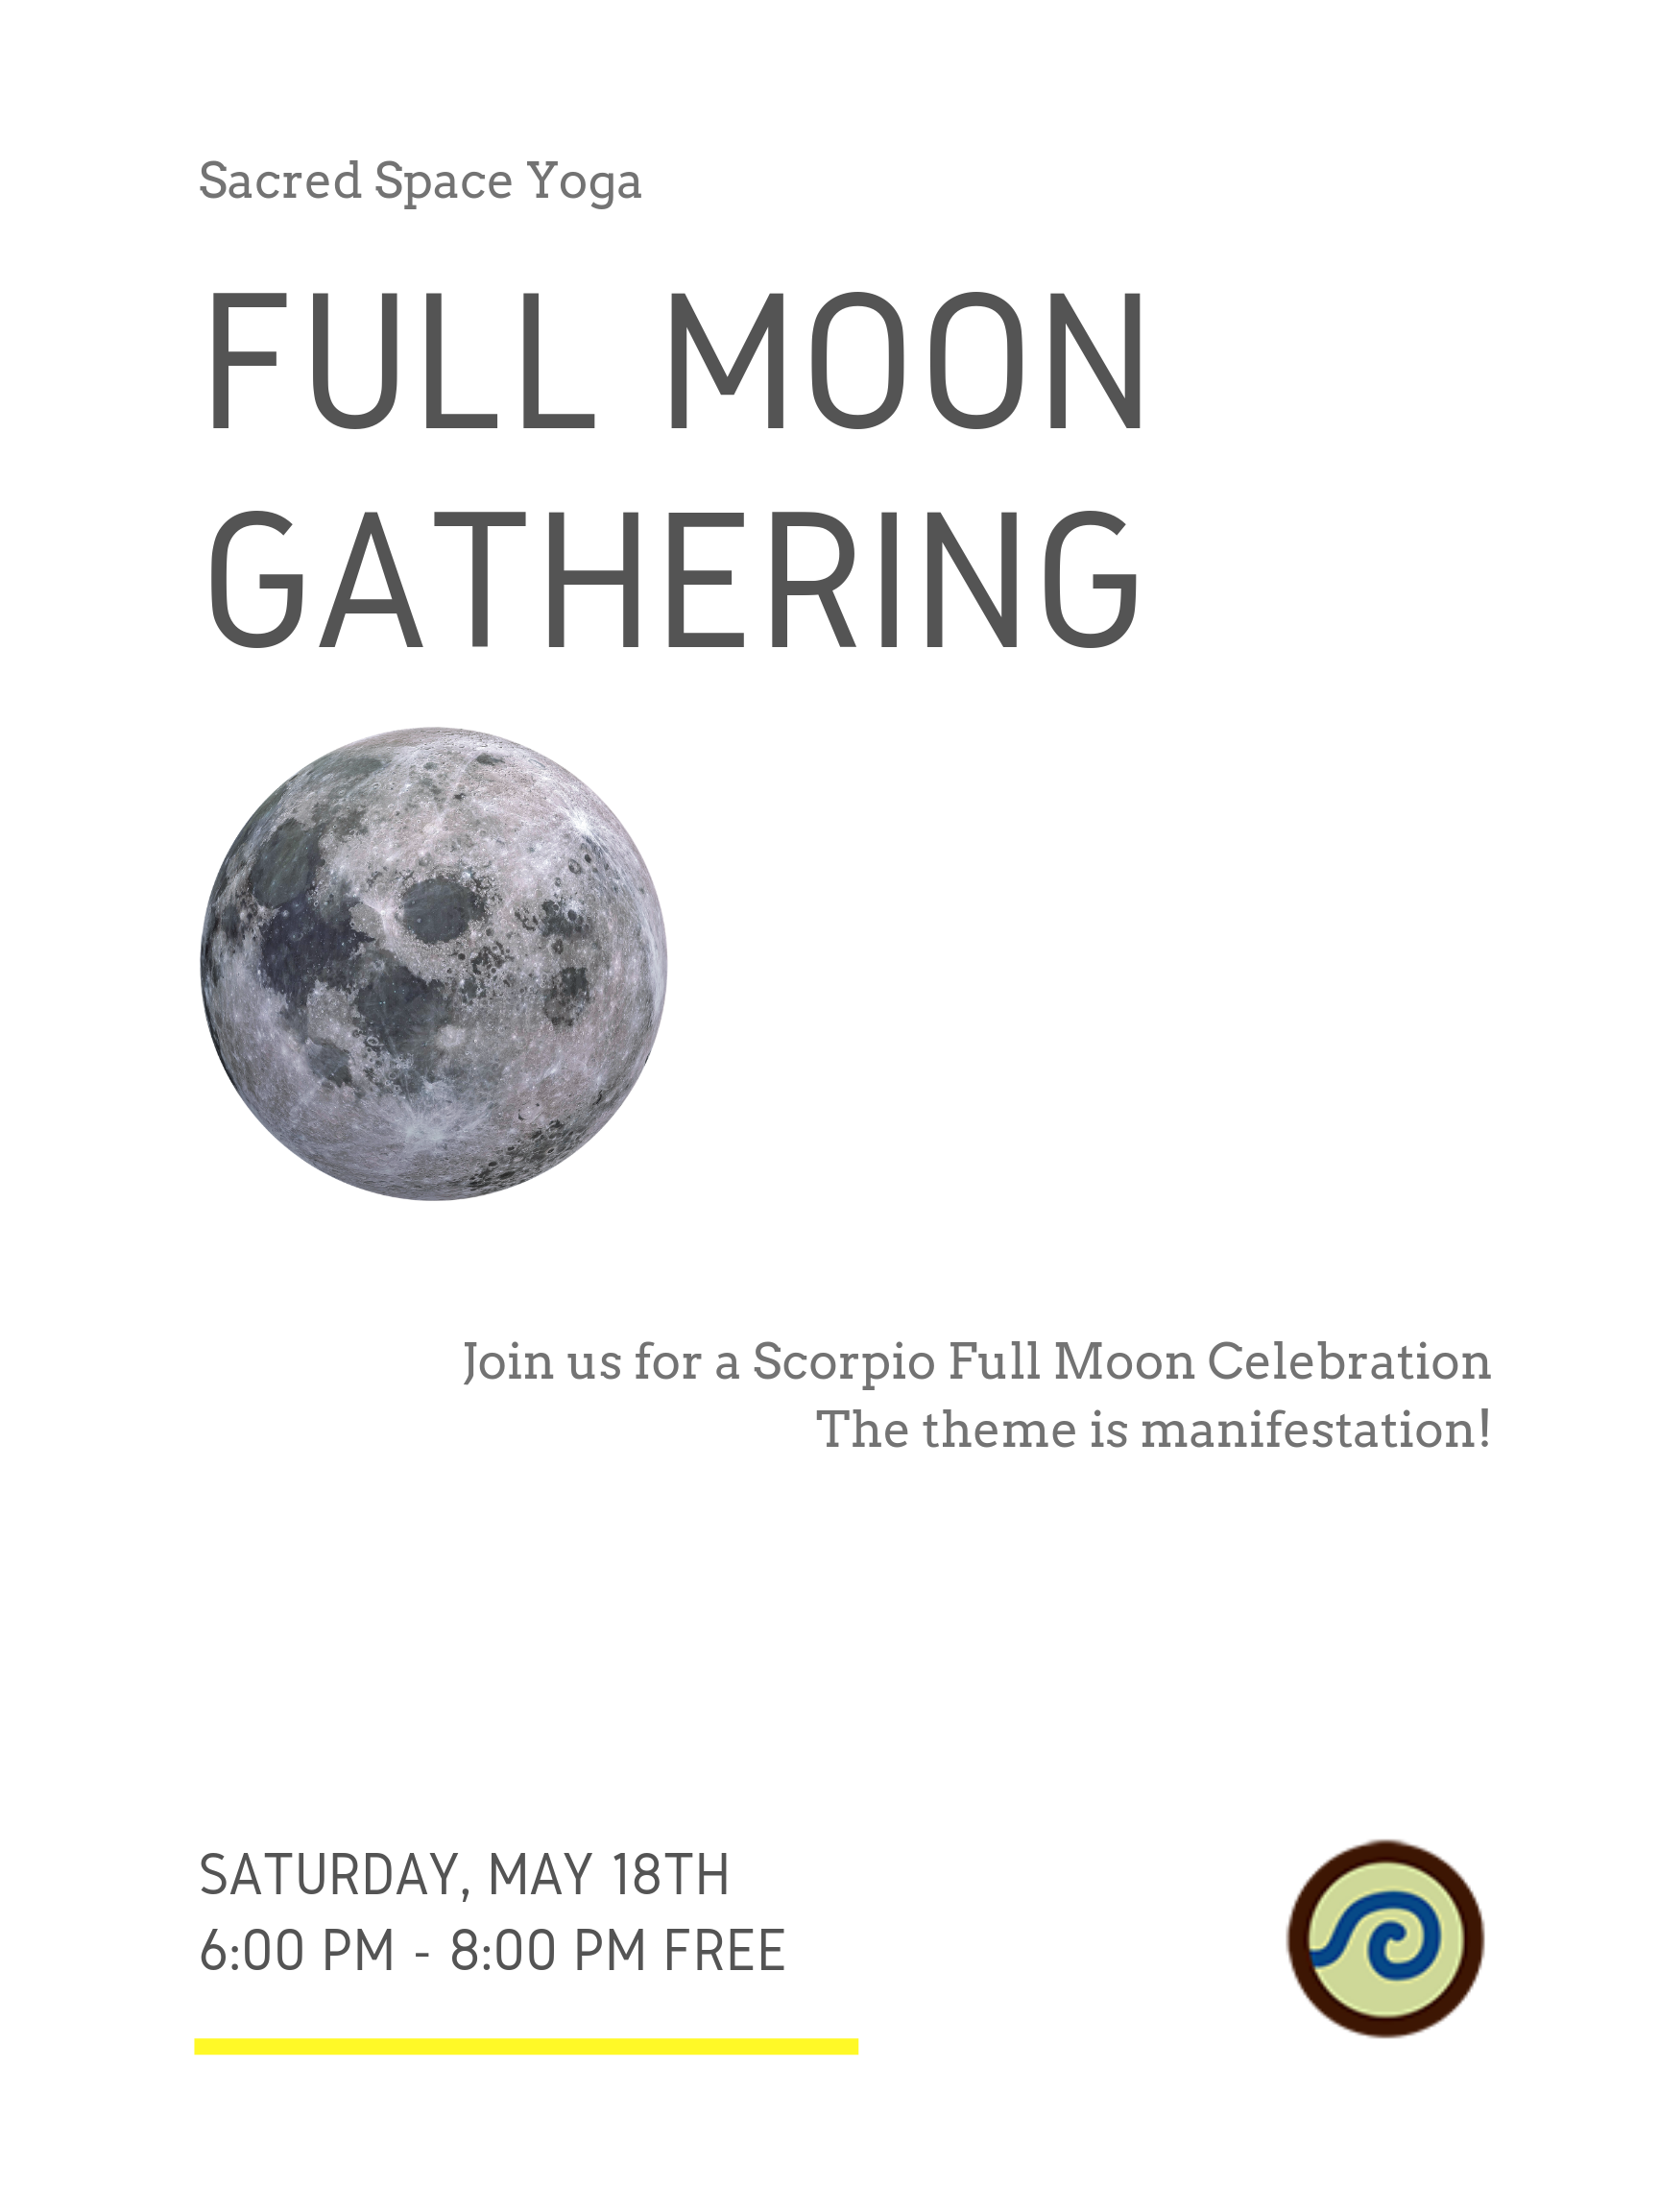 SSY Full Moon Gathering 5.6.19.png